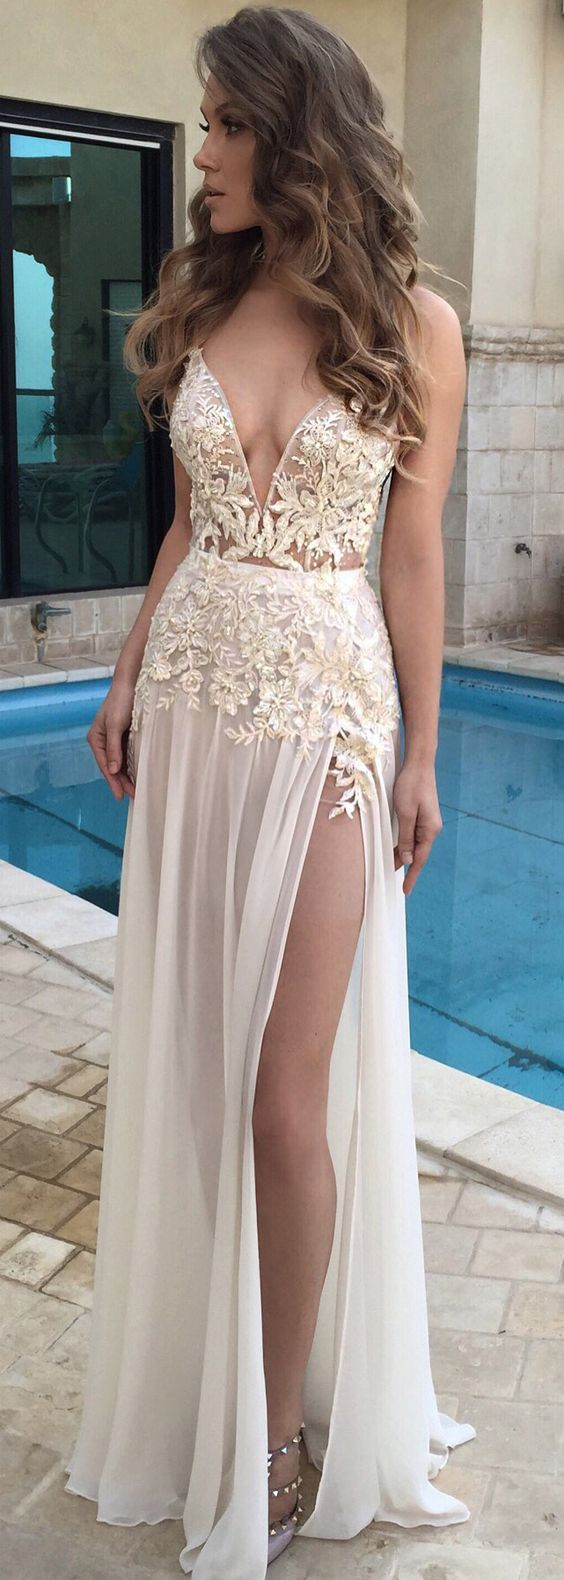 Sexy V-Neck Prom Dress, Charming Side Split  Prom Dress,Party Prom Dresses,122 - Thumbnail 1